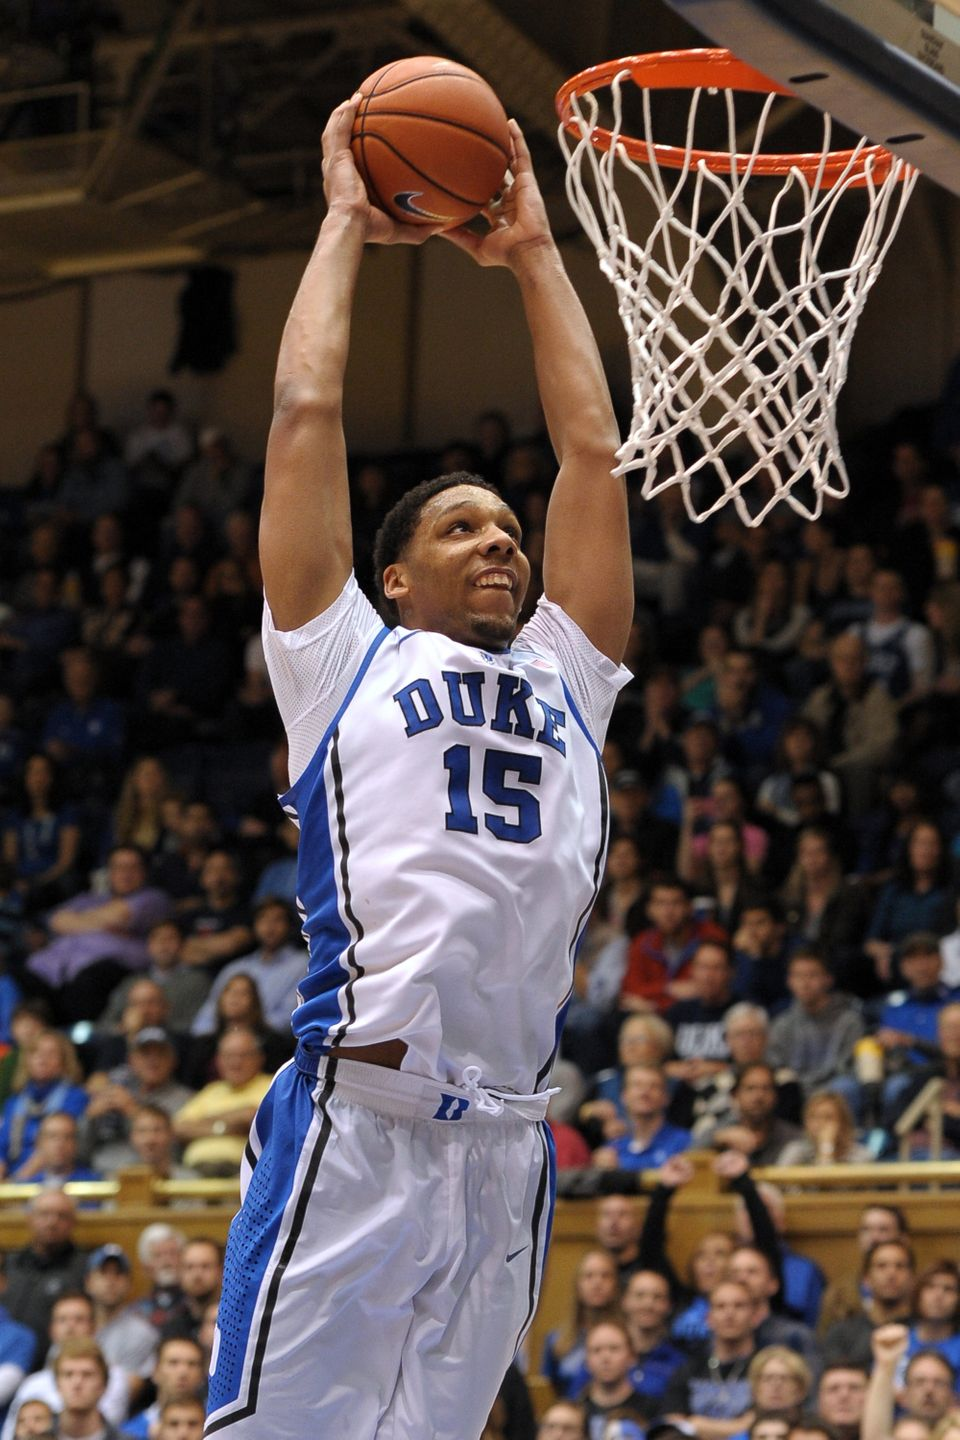 The 6-foot-11-inch Okafor, who just turned 19, is a Chicago native like Jabari Parker. And like Parker before him, Okafor has